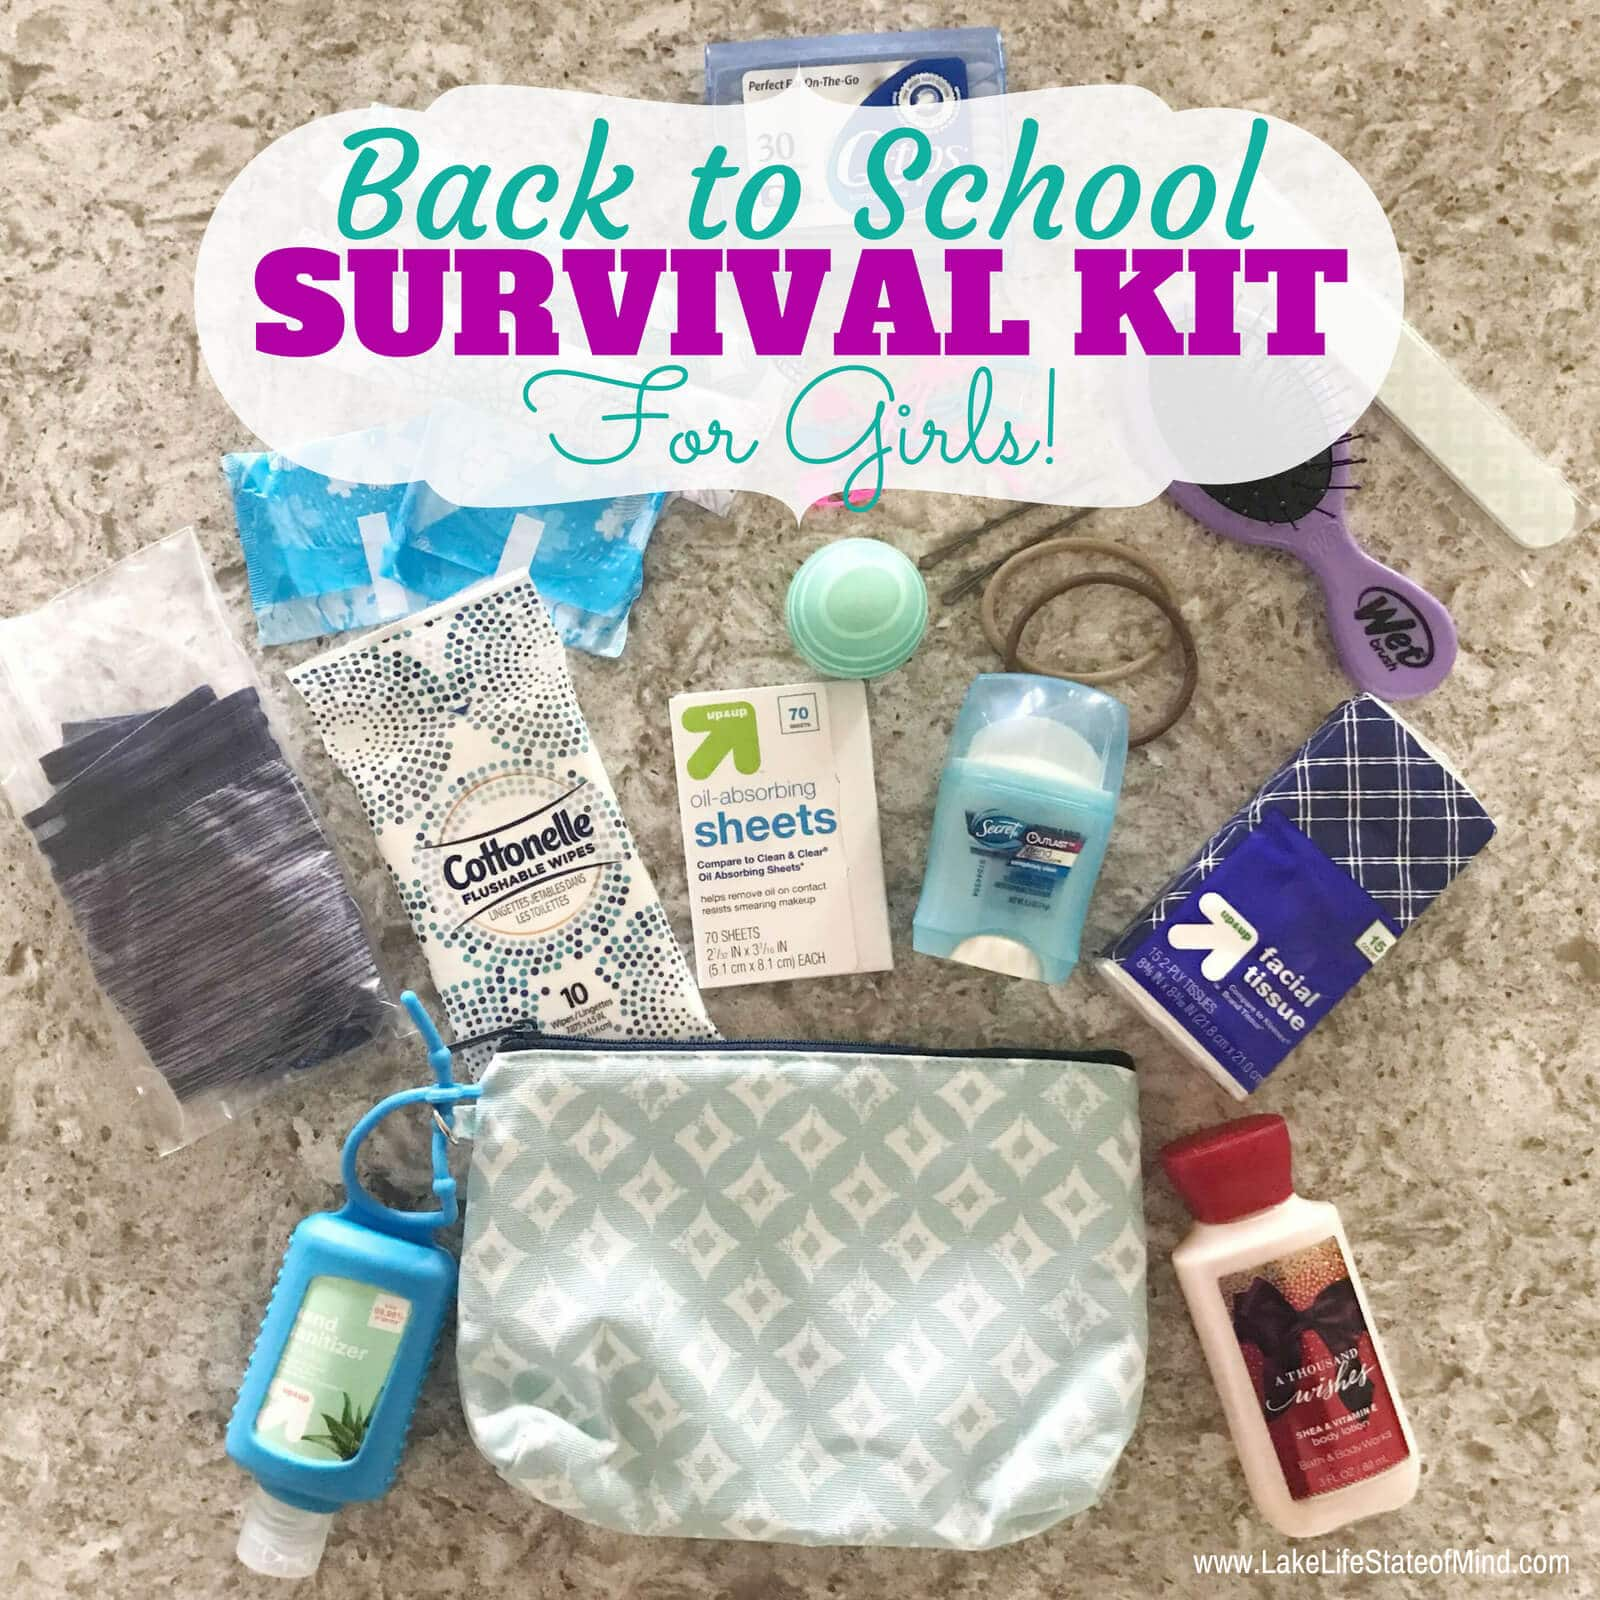 Back to School Survival Kit for Girls